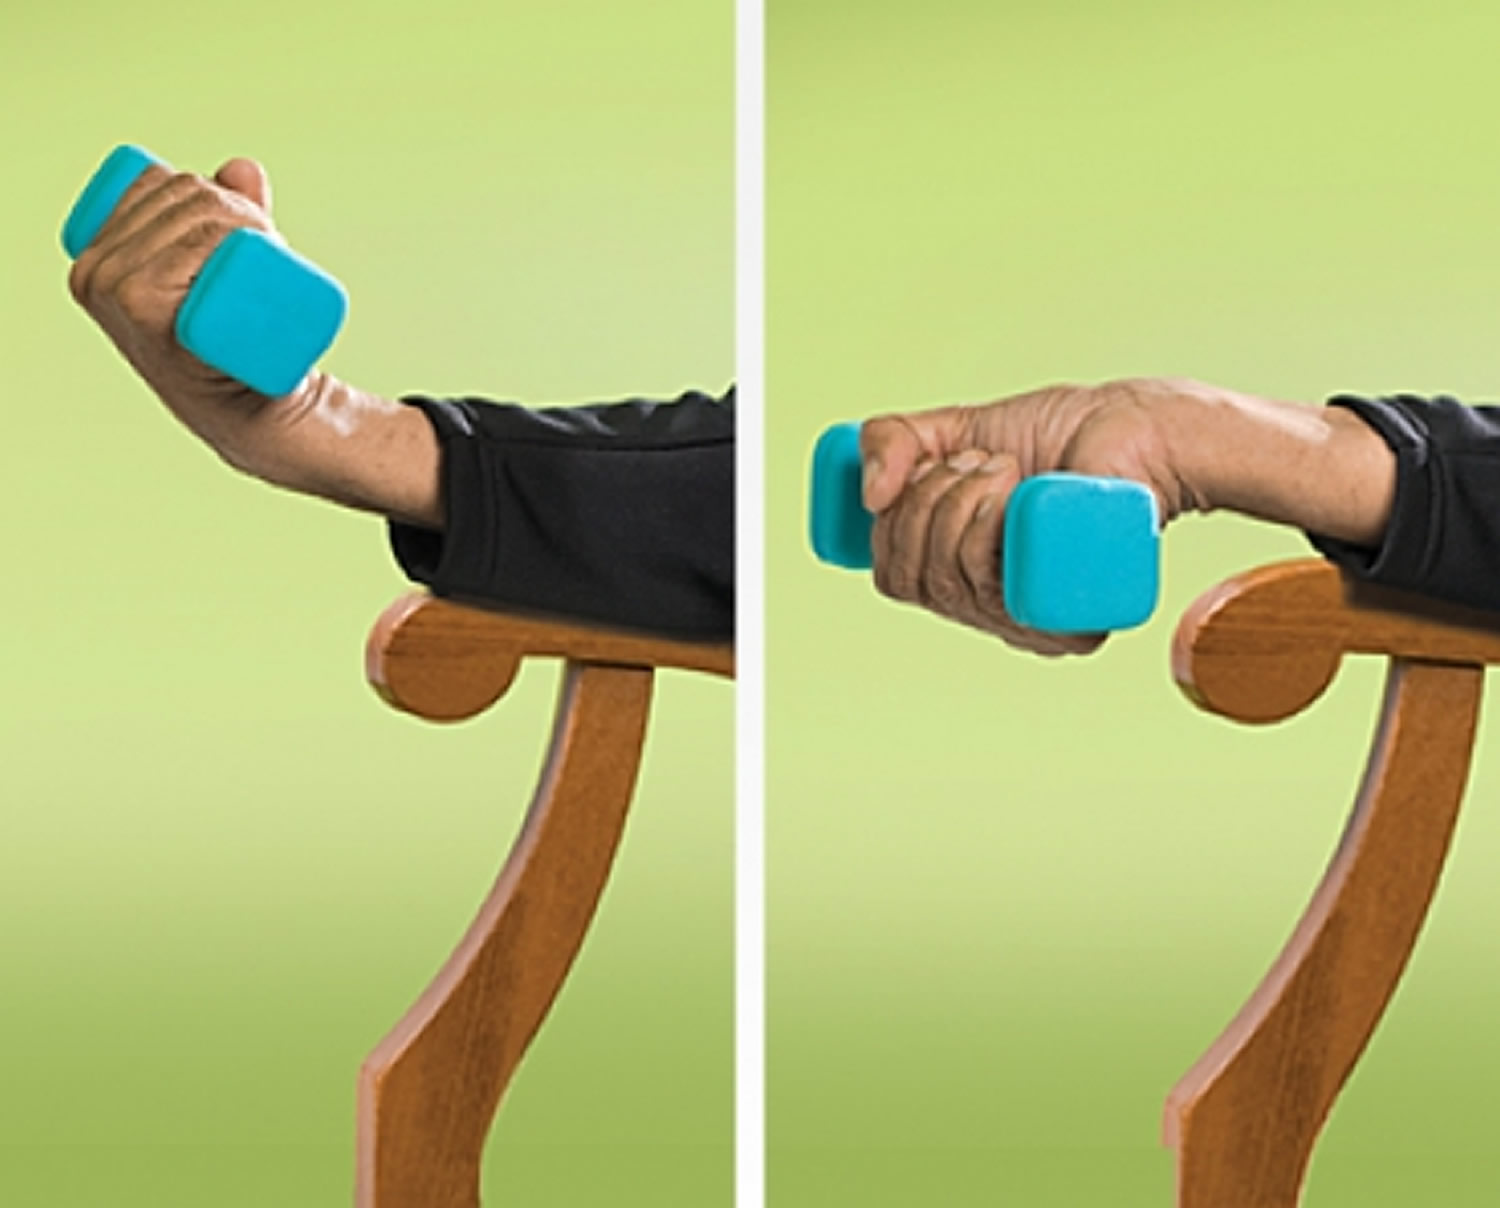 Wrist Curl strength exercise for seniors